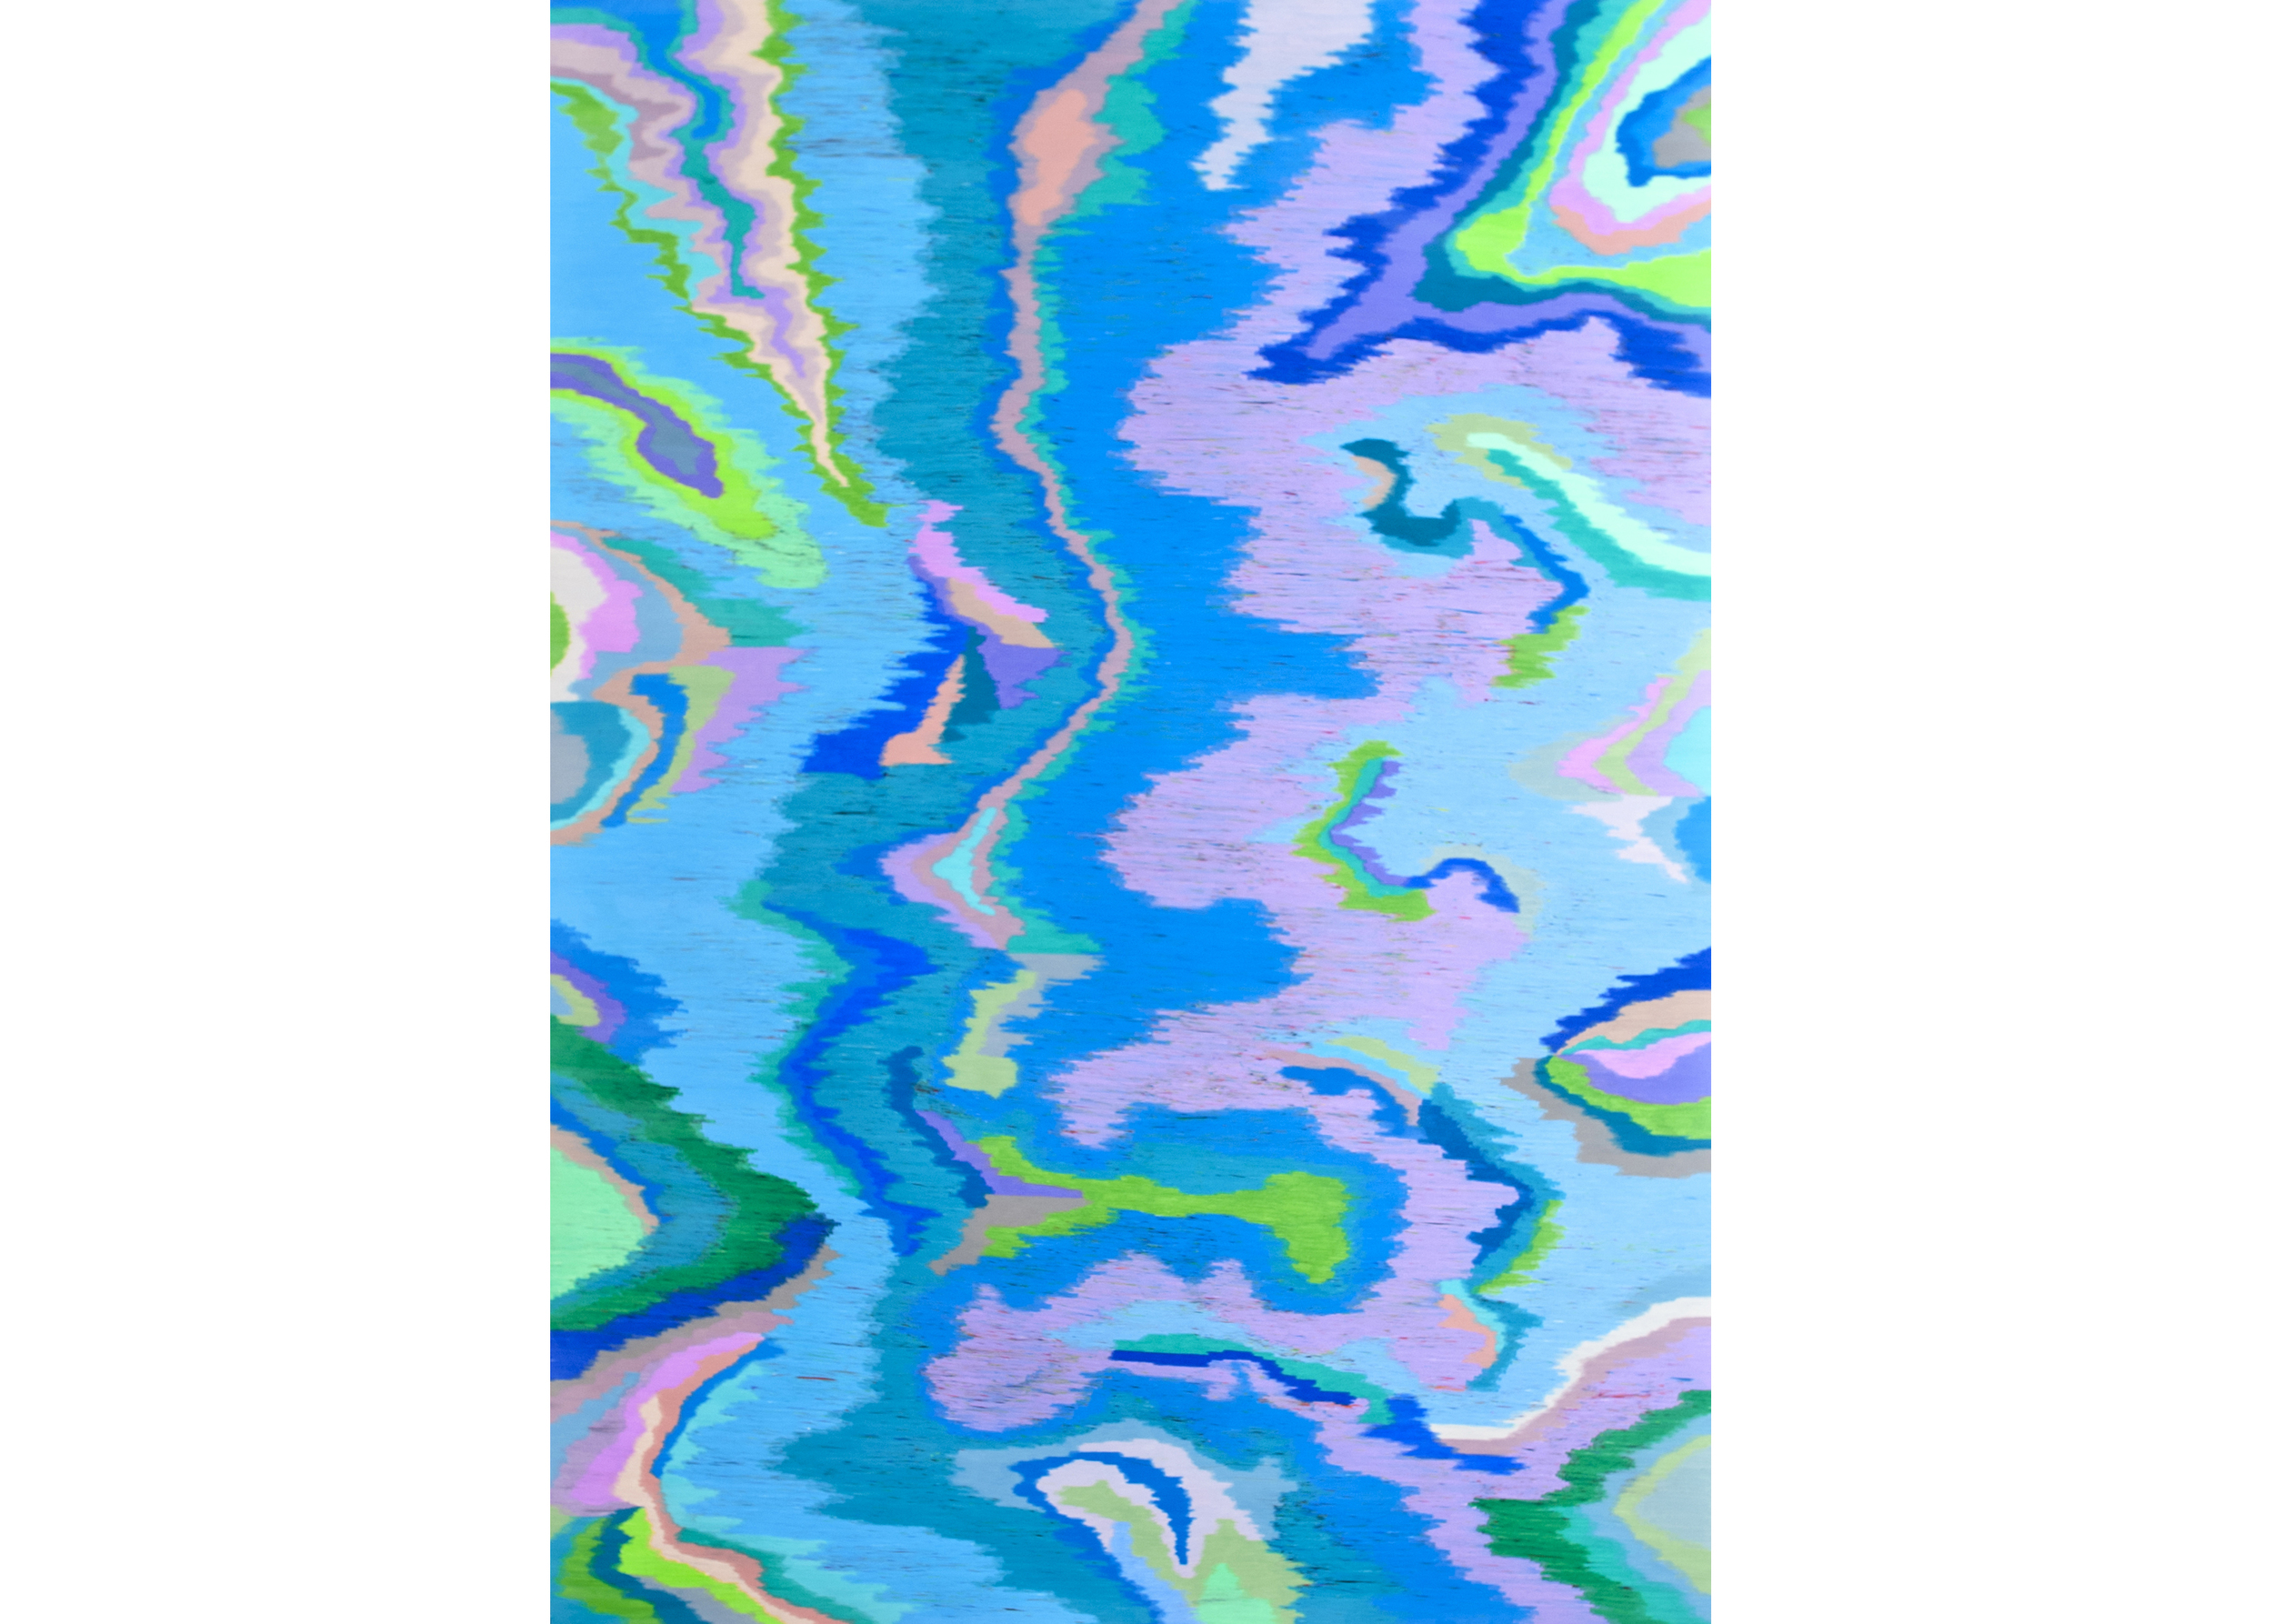 Scrambled Channel (Visualizing the light Spectrum of Aquamarine), 2013, color pencil on paper, 72 x 51 in.